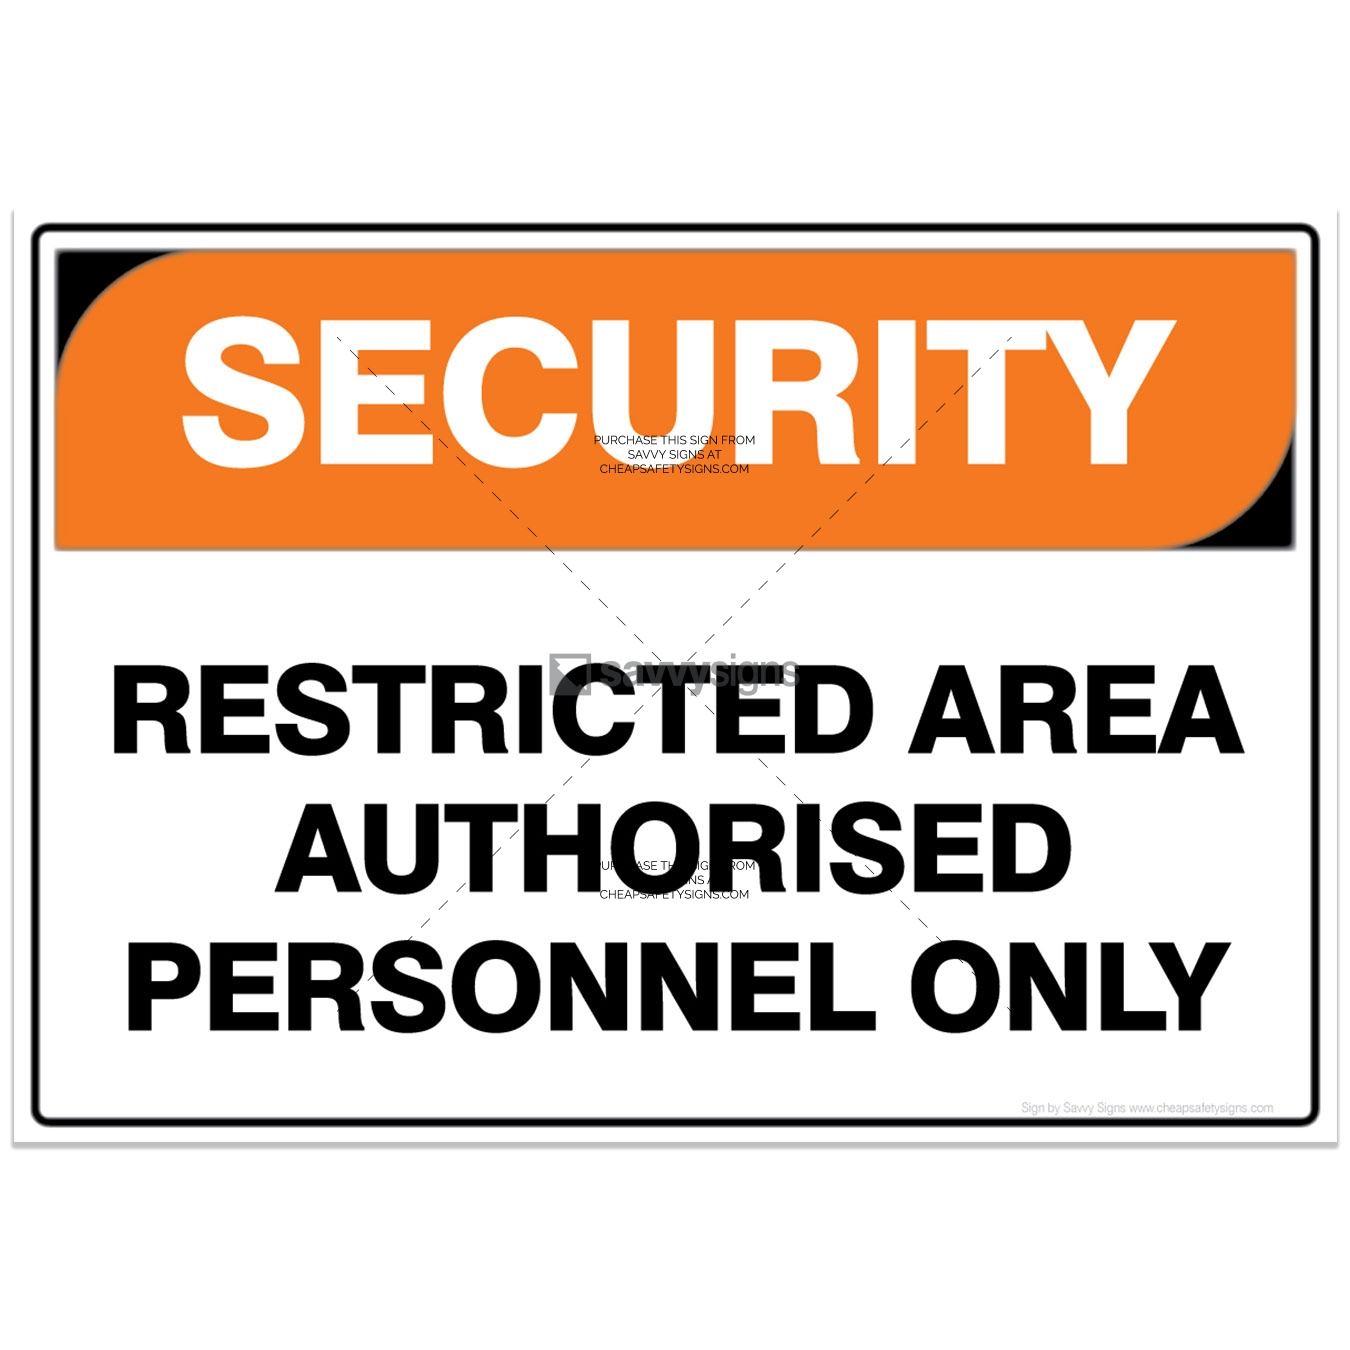 SSSEC3016-SECURITY-Workplace-Safety-Signs_Savvy-Signs_v3